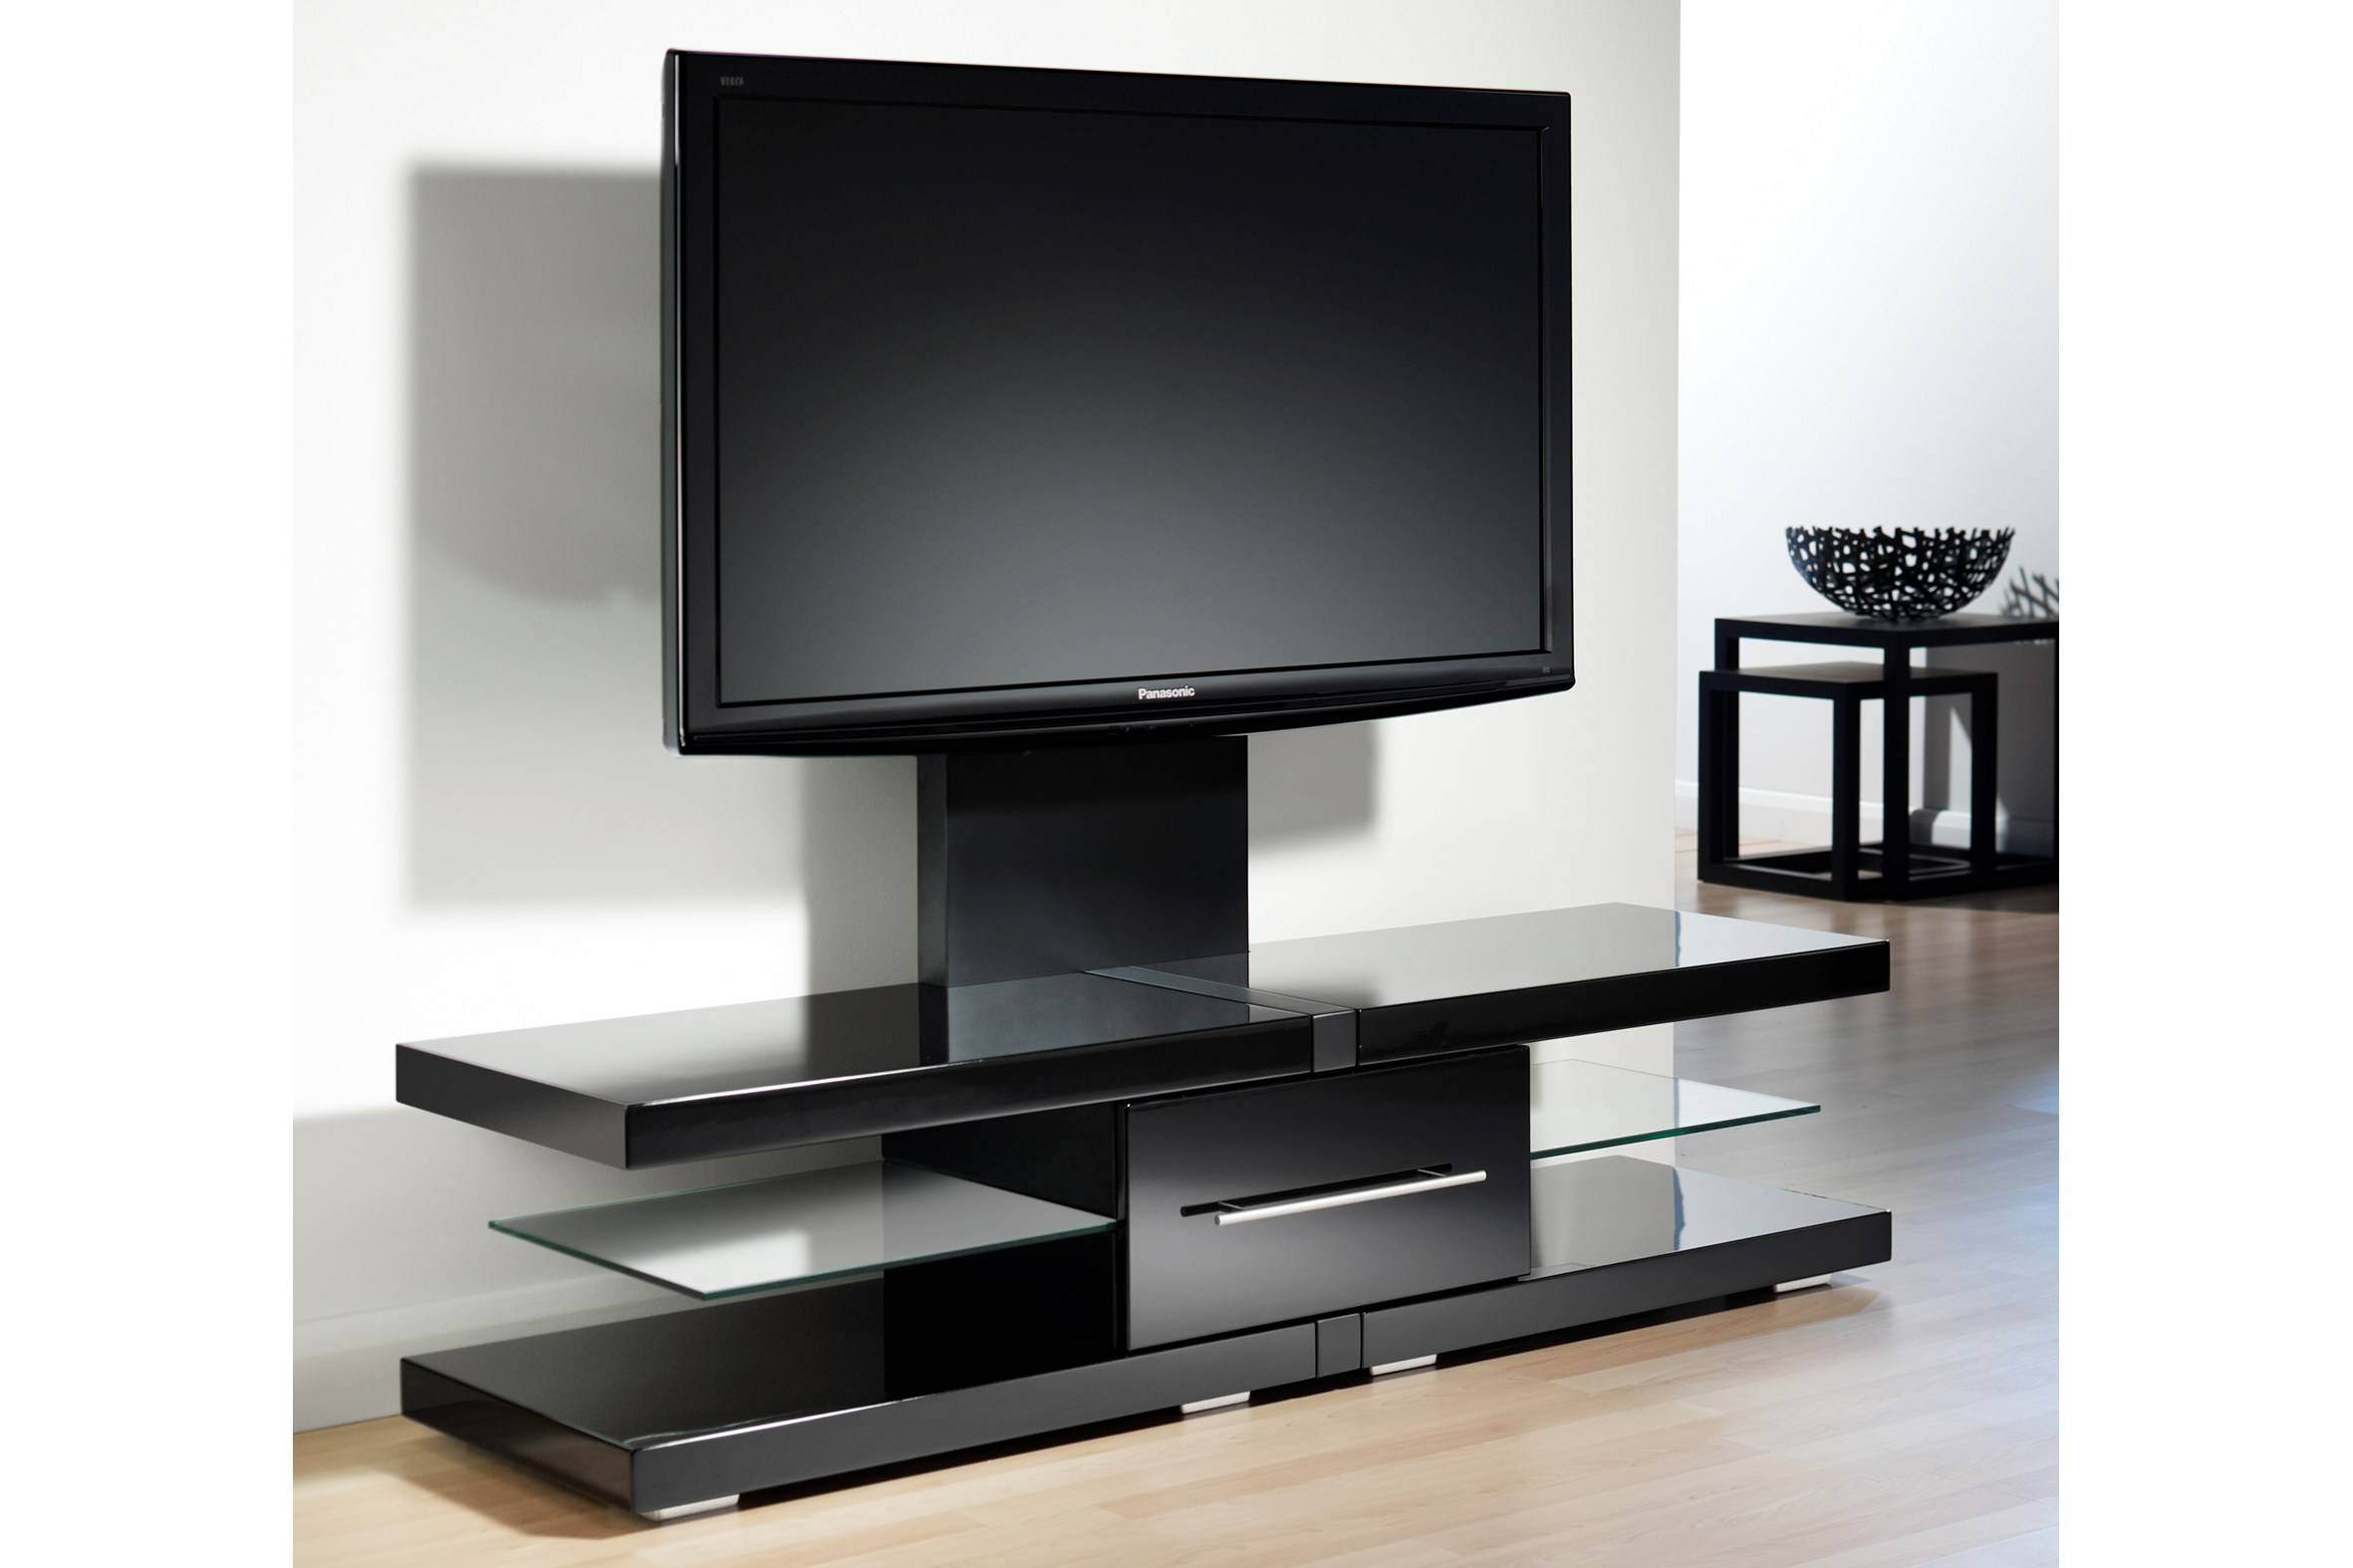 Fancy Tv Stand Cabinet Design 85 With Tv Stand Cabinet Design - Home regarding Fancy Tv Stands (Image 6 of 15)